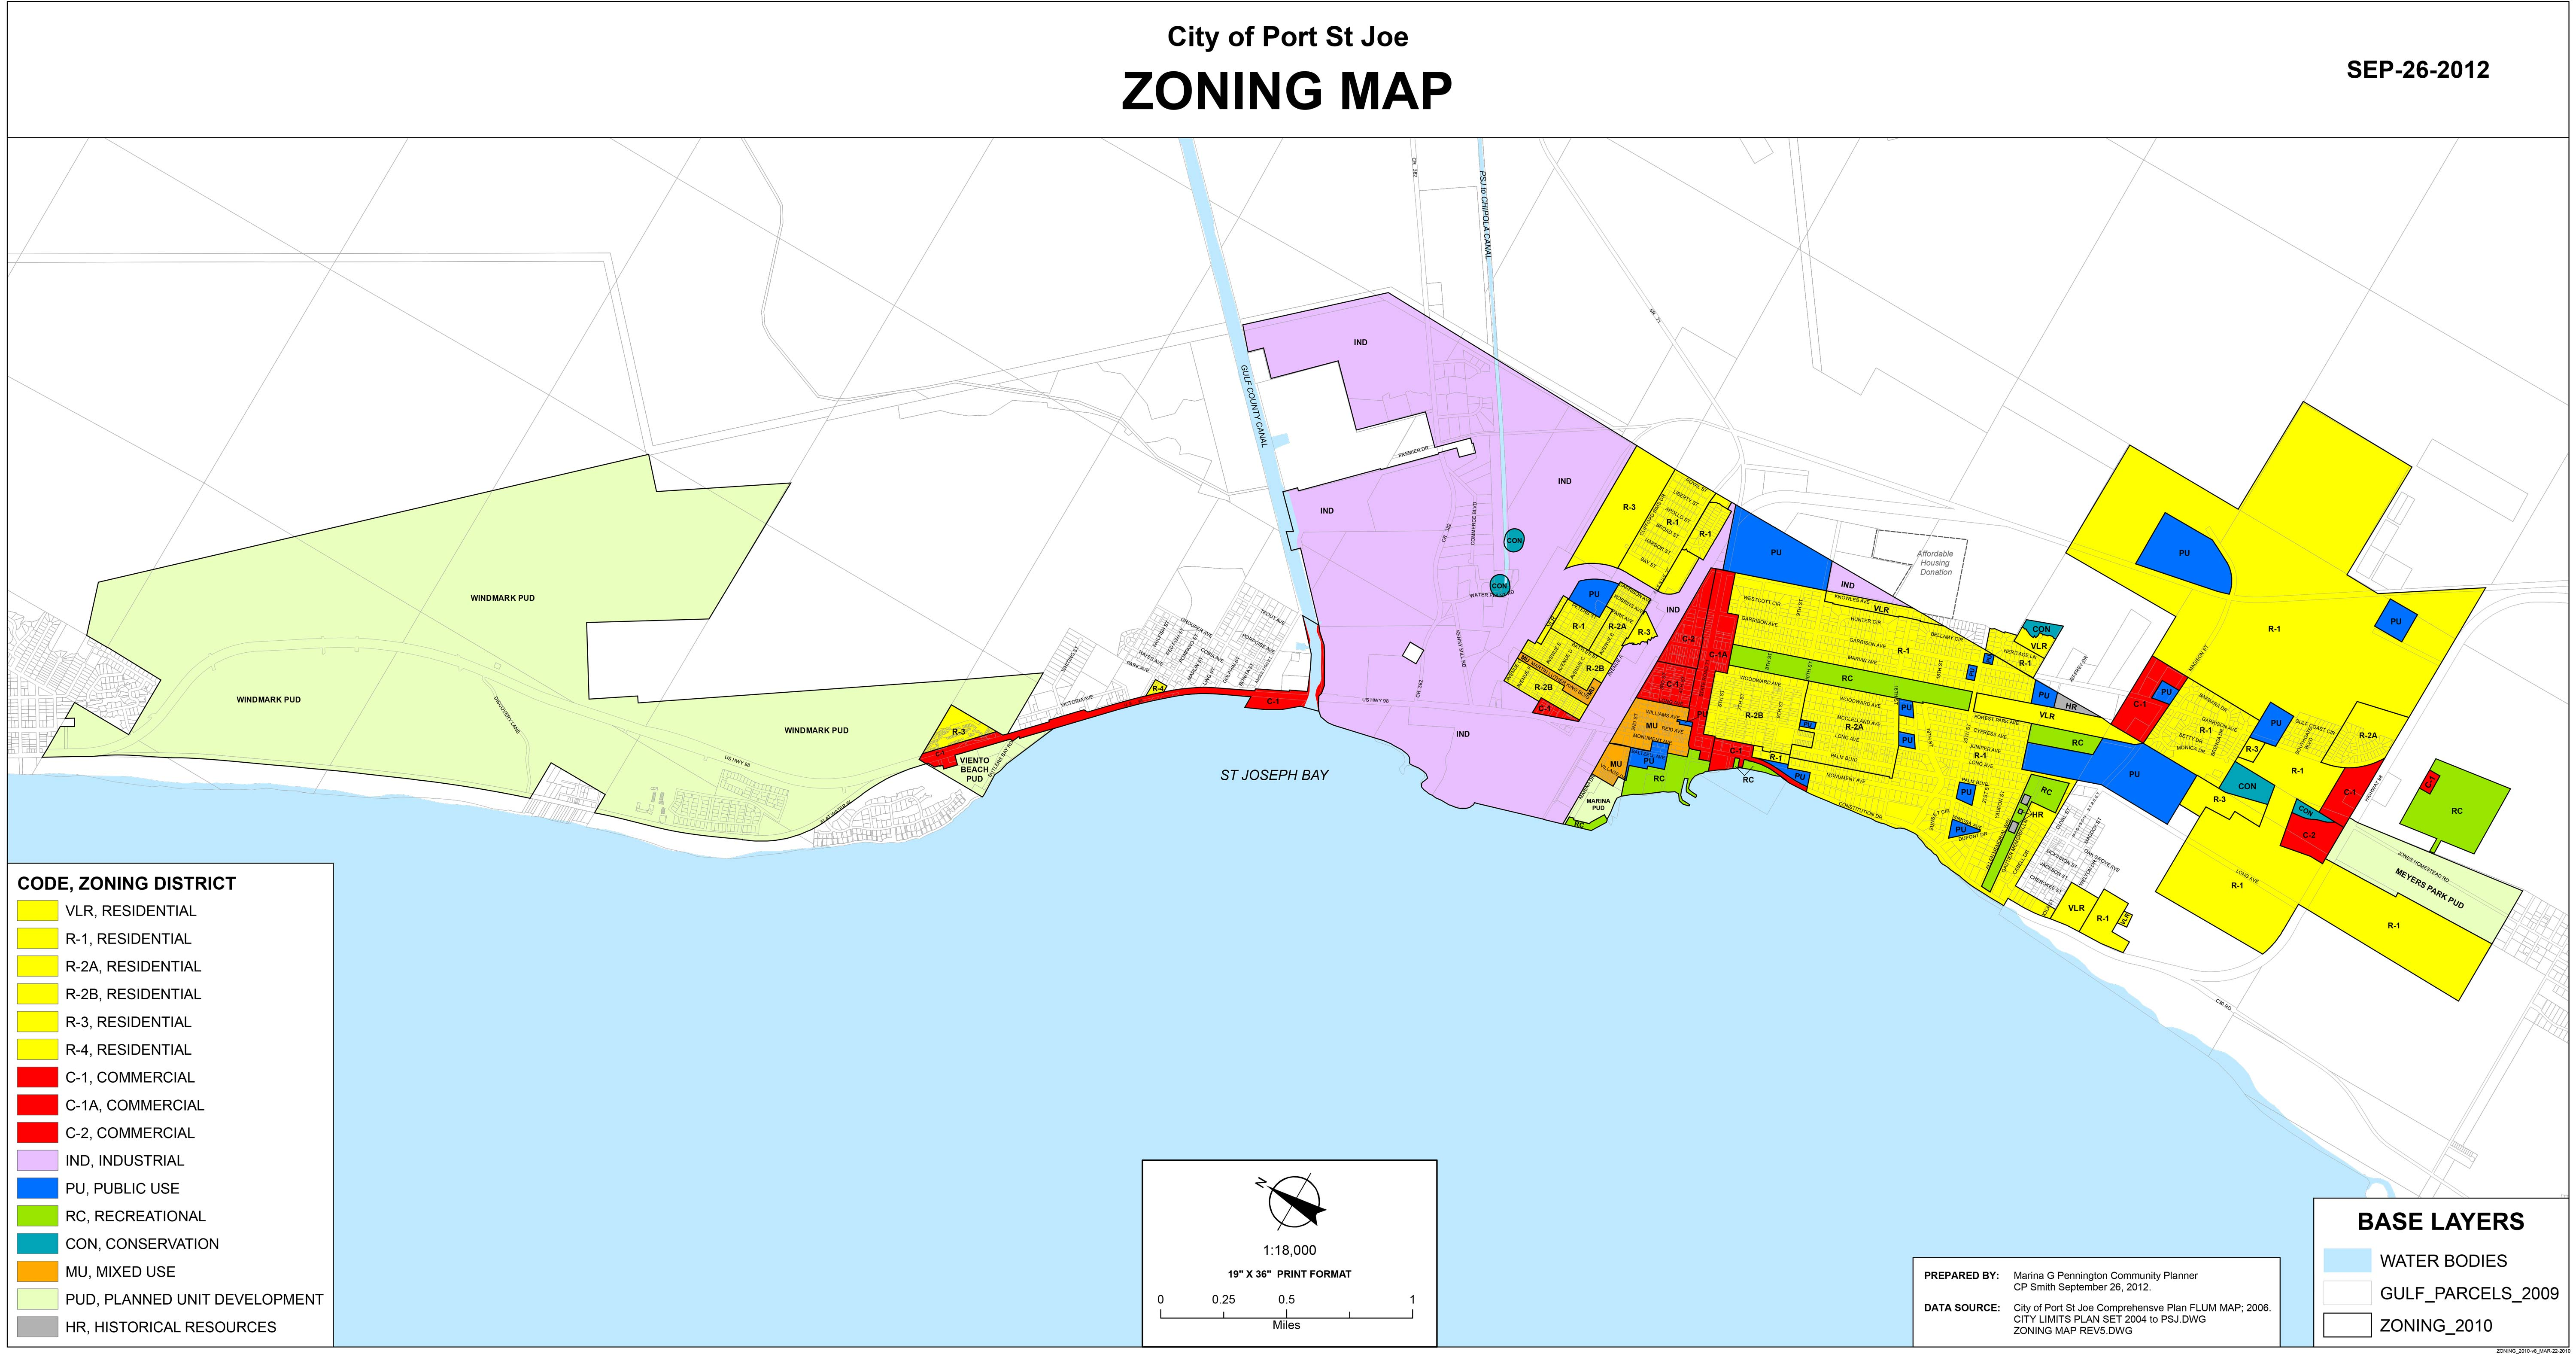 City Zoning Map City of PSJ Zoning Map | 98 Real Estate Group